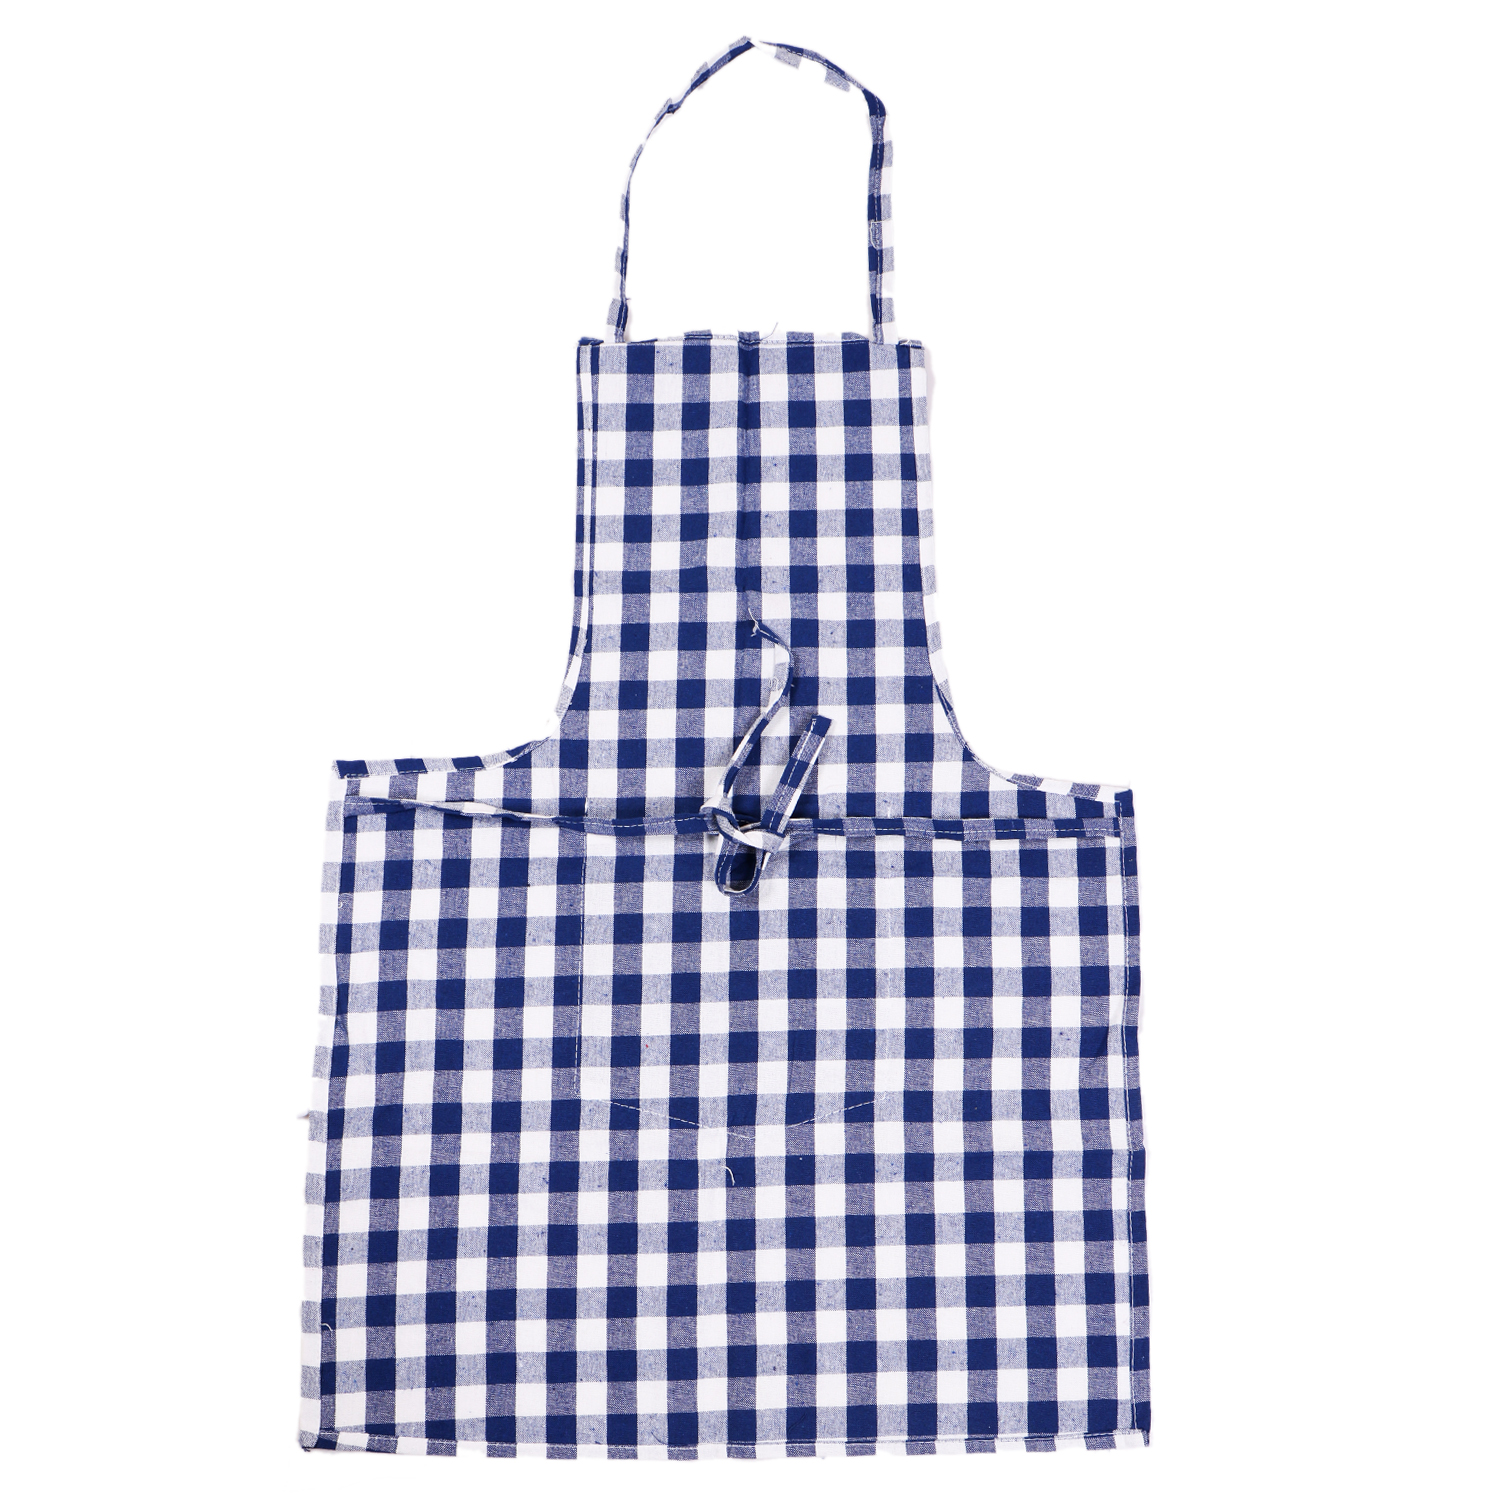 Kuber Industries Checkered Design 3 Pieces Cotton Kitchen Apron with Front Pocket (Blue & White)-CTKTC32594